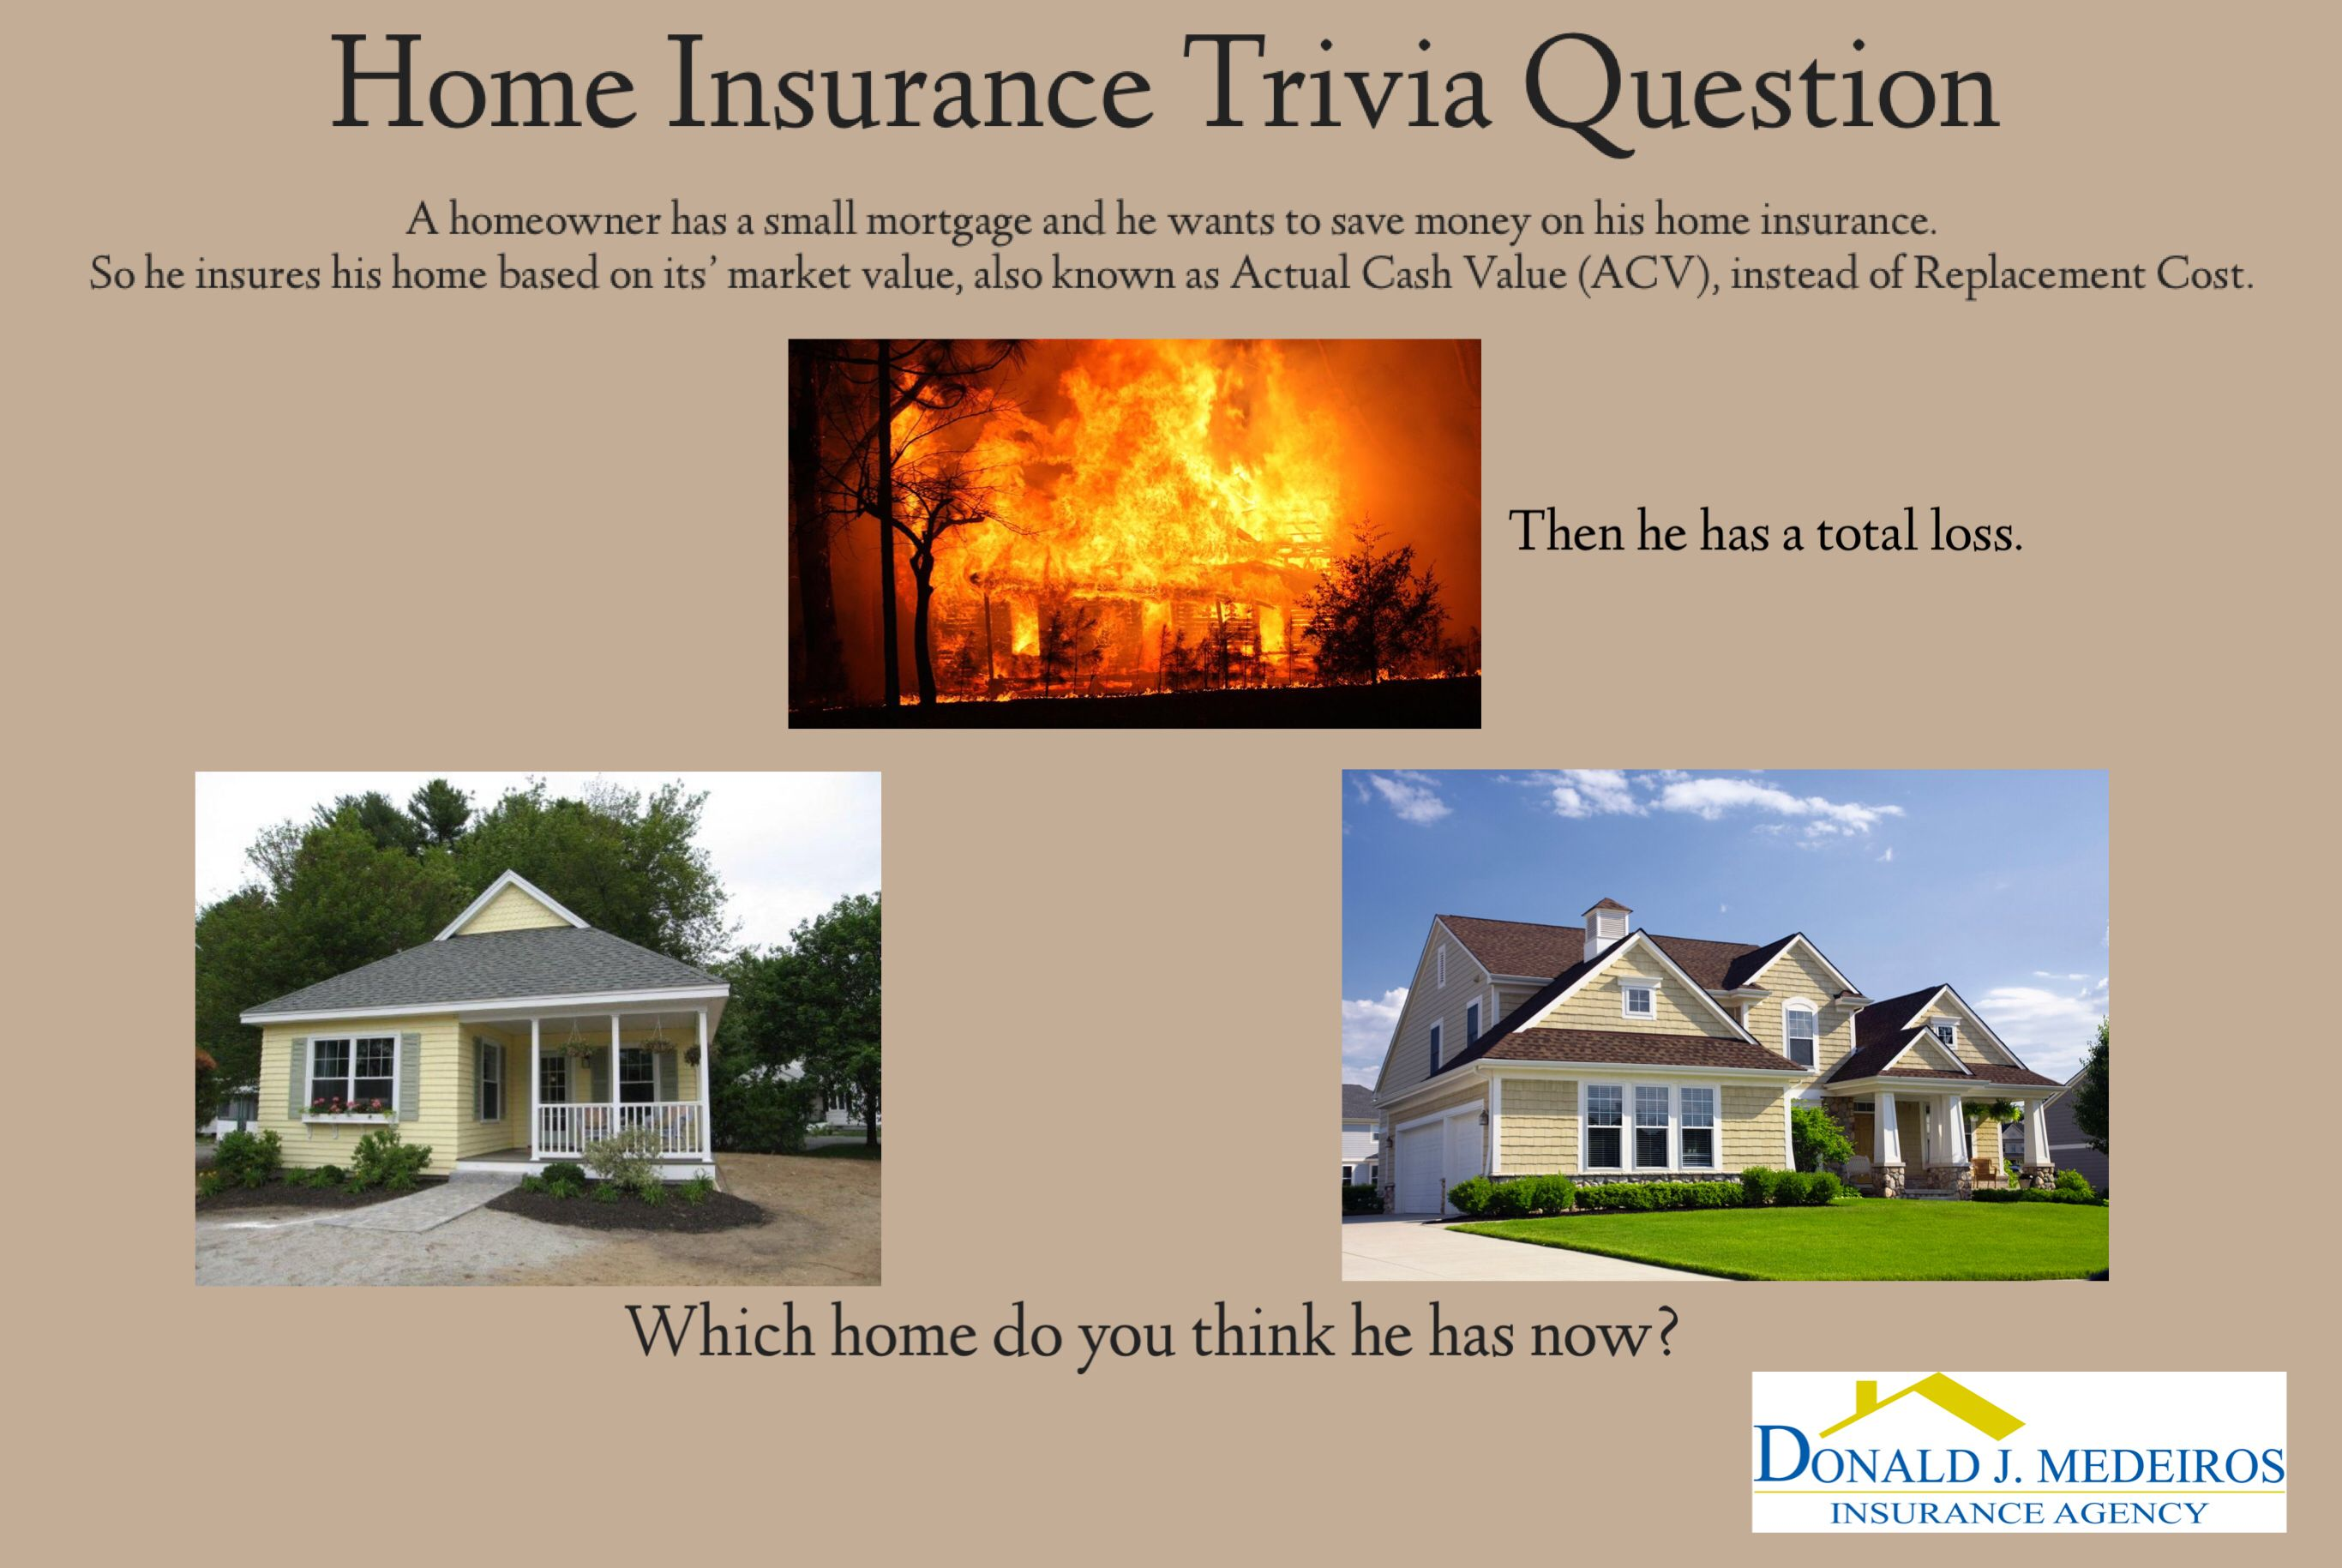 Home Insurance Acv Vs Replacement Cost Home Insurance